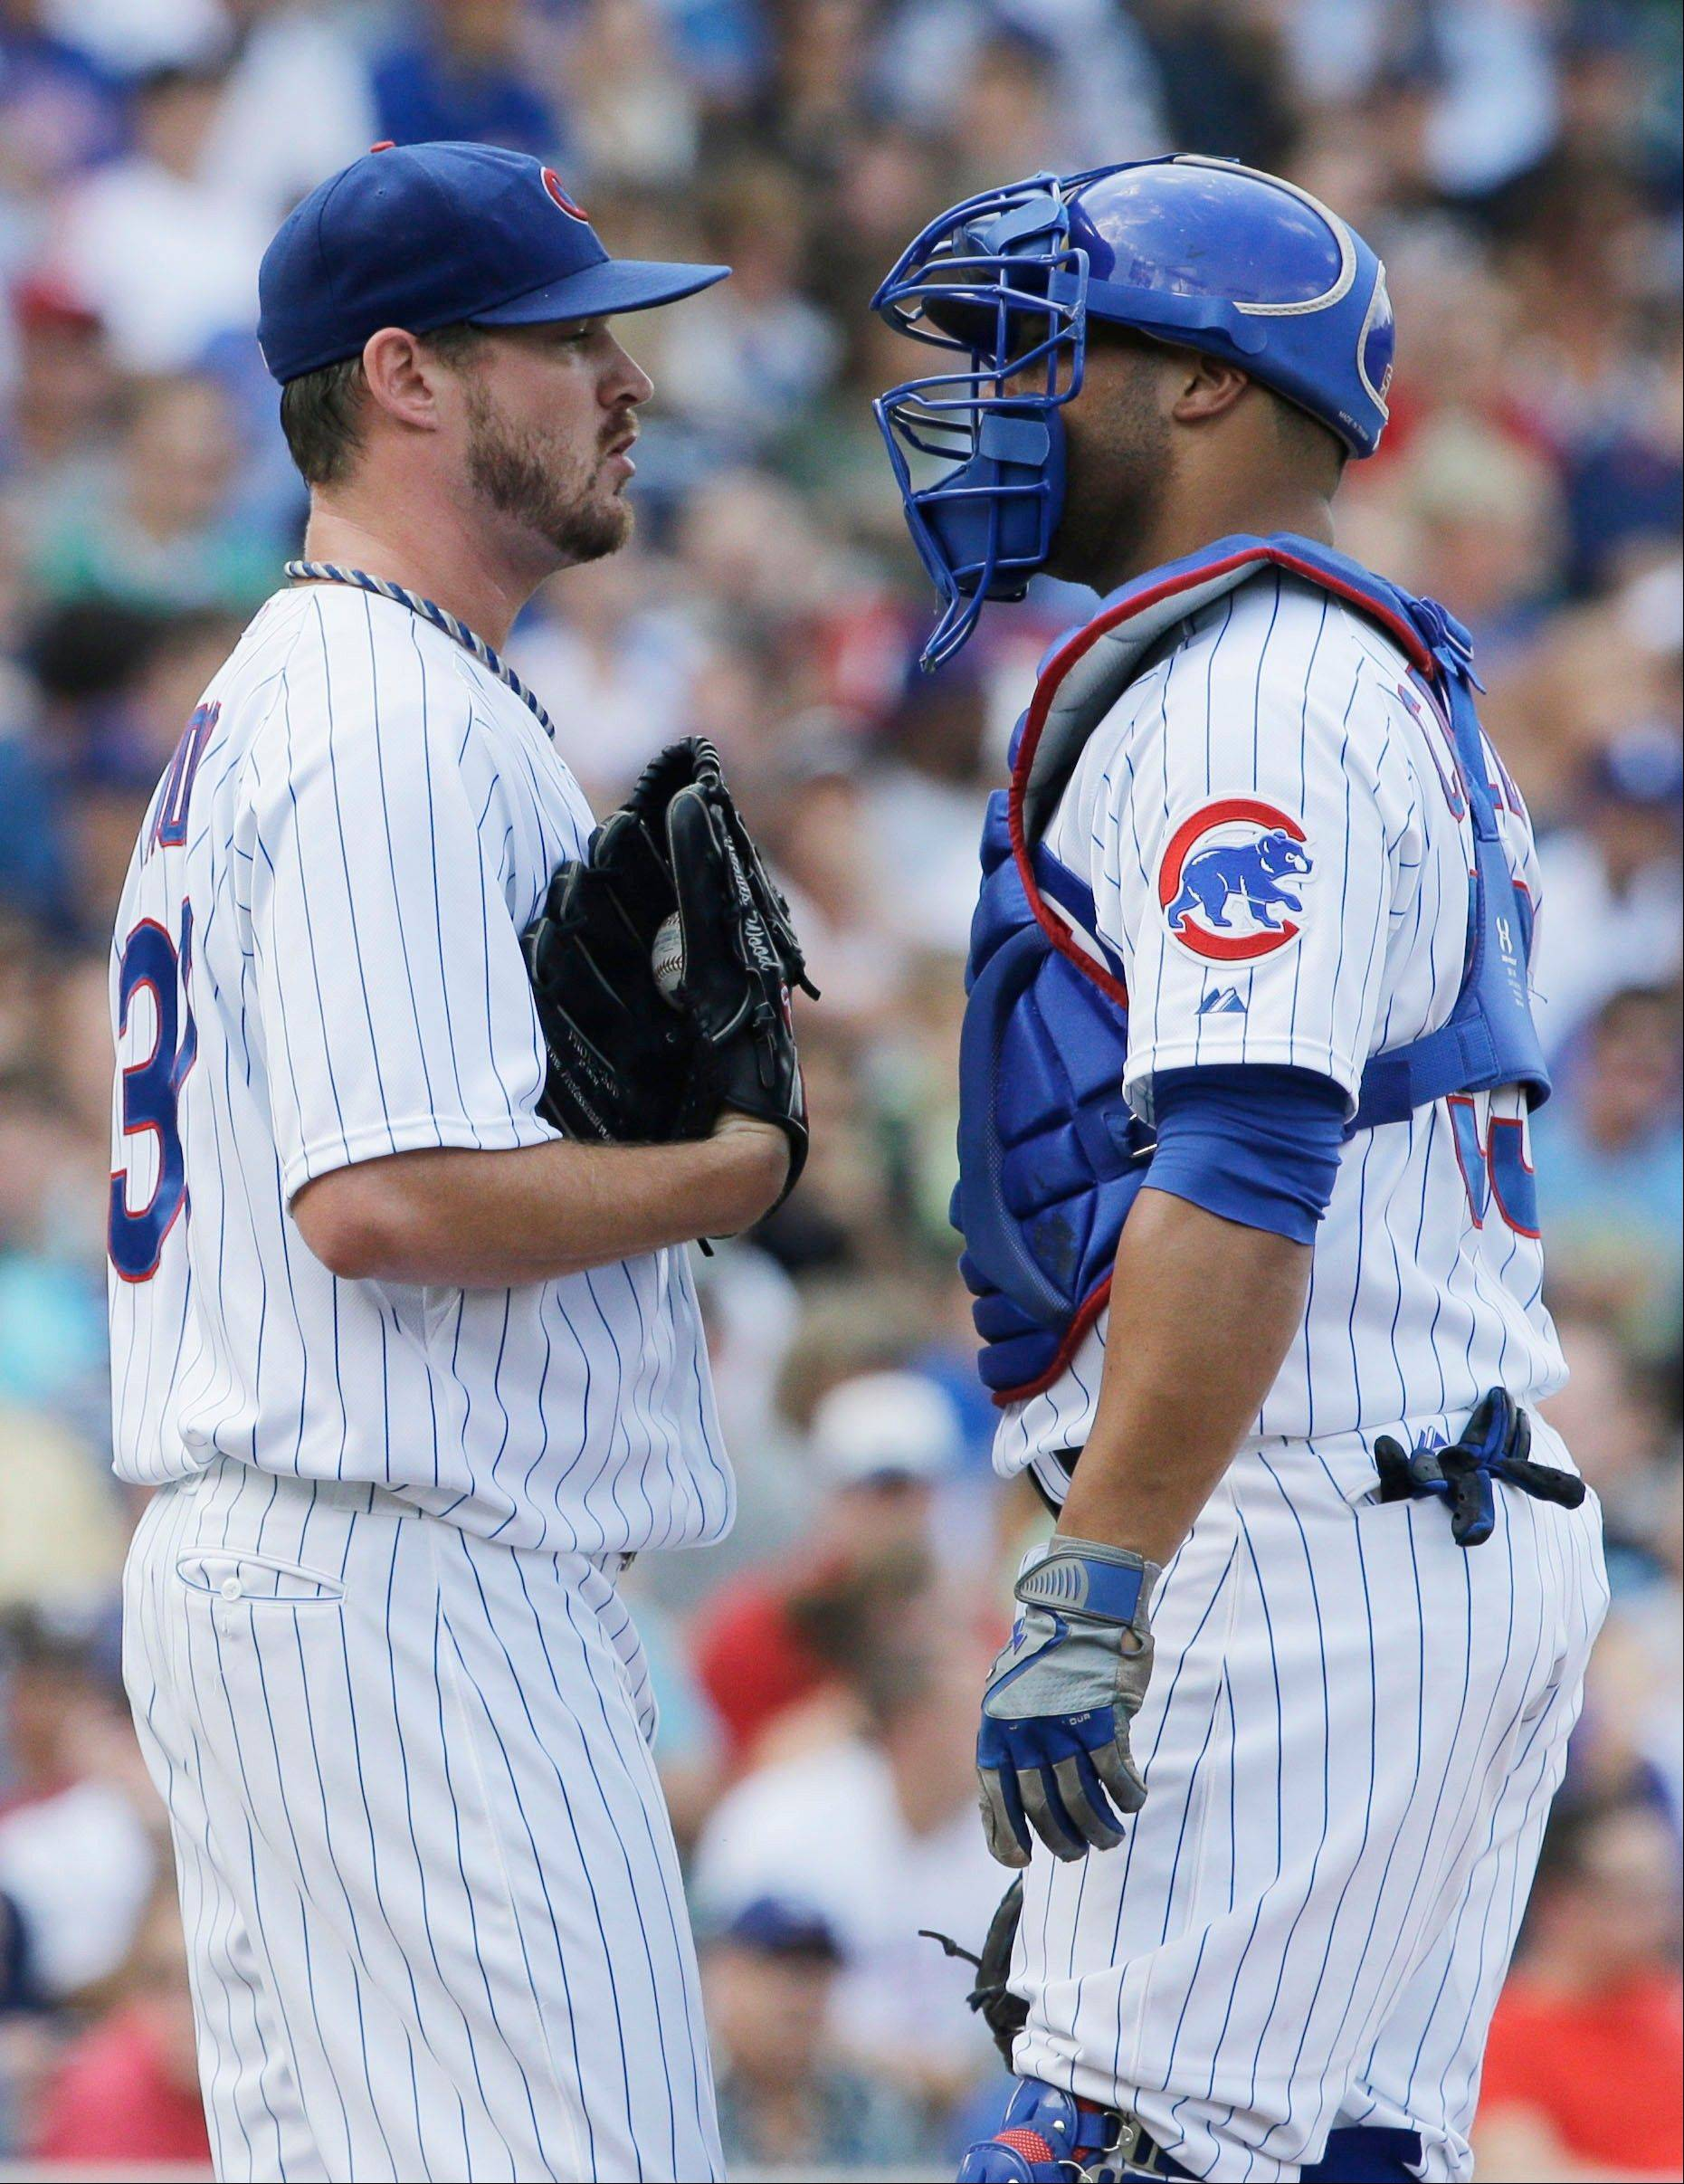 Cubs starter Travis Wood, and catcher Welington Castillo have shown enough positives to be considered part of the core in the team's rebuilding effort.